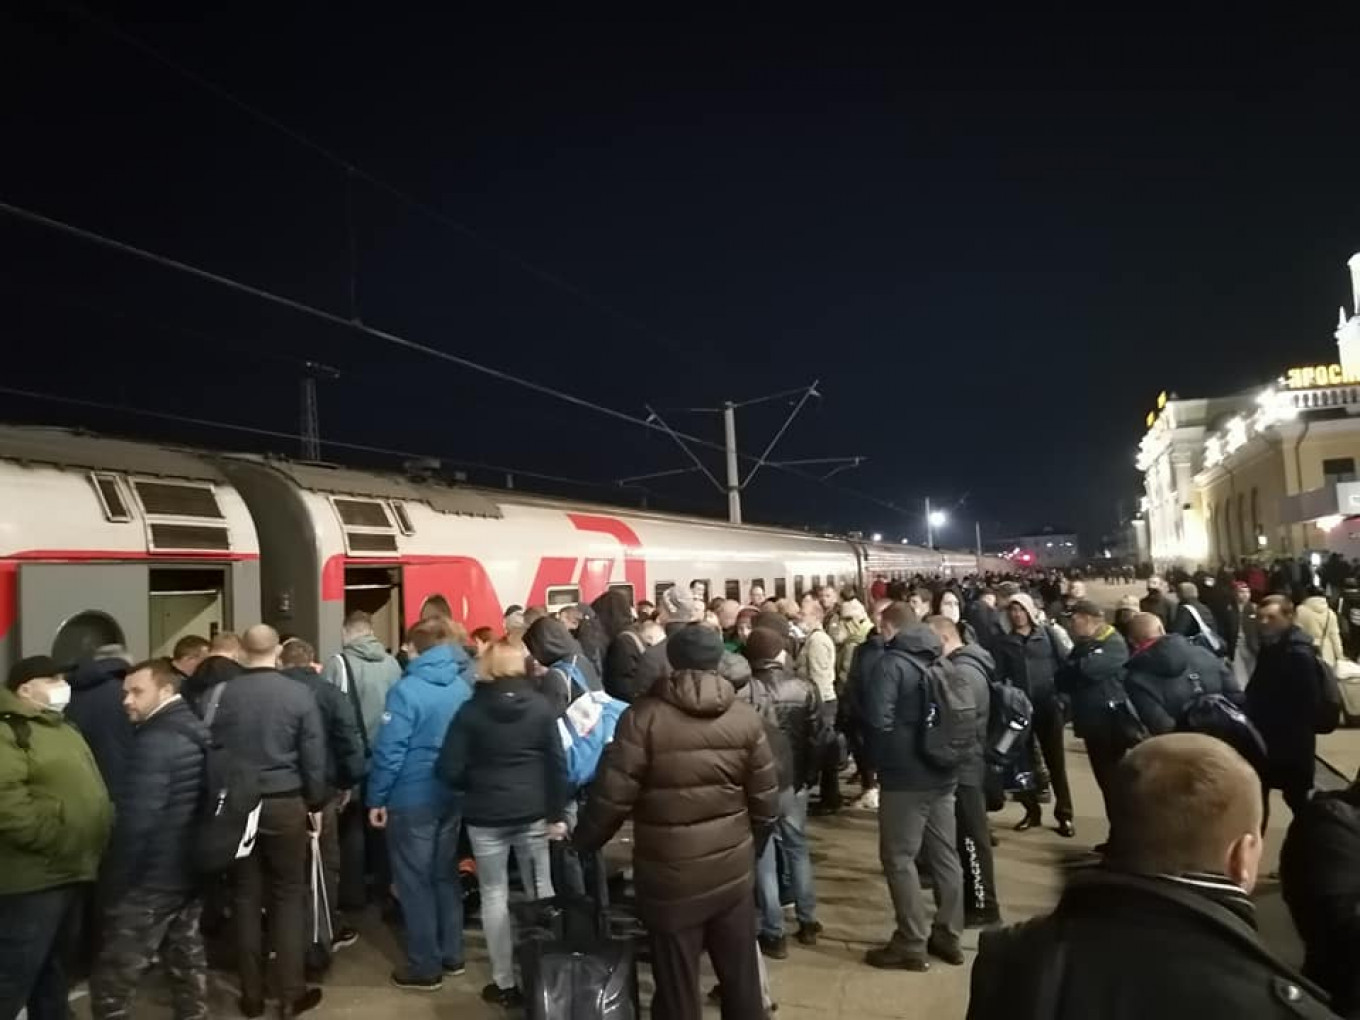 Employees of the Yaroslavl Motor Company board a special train to Moscow at around 4.00 a.m. on Sunday, Sept. 19. Facebook / Yevgeniya Ovod